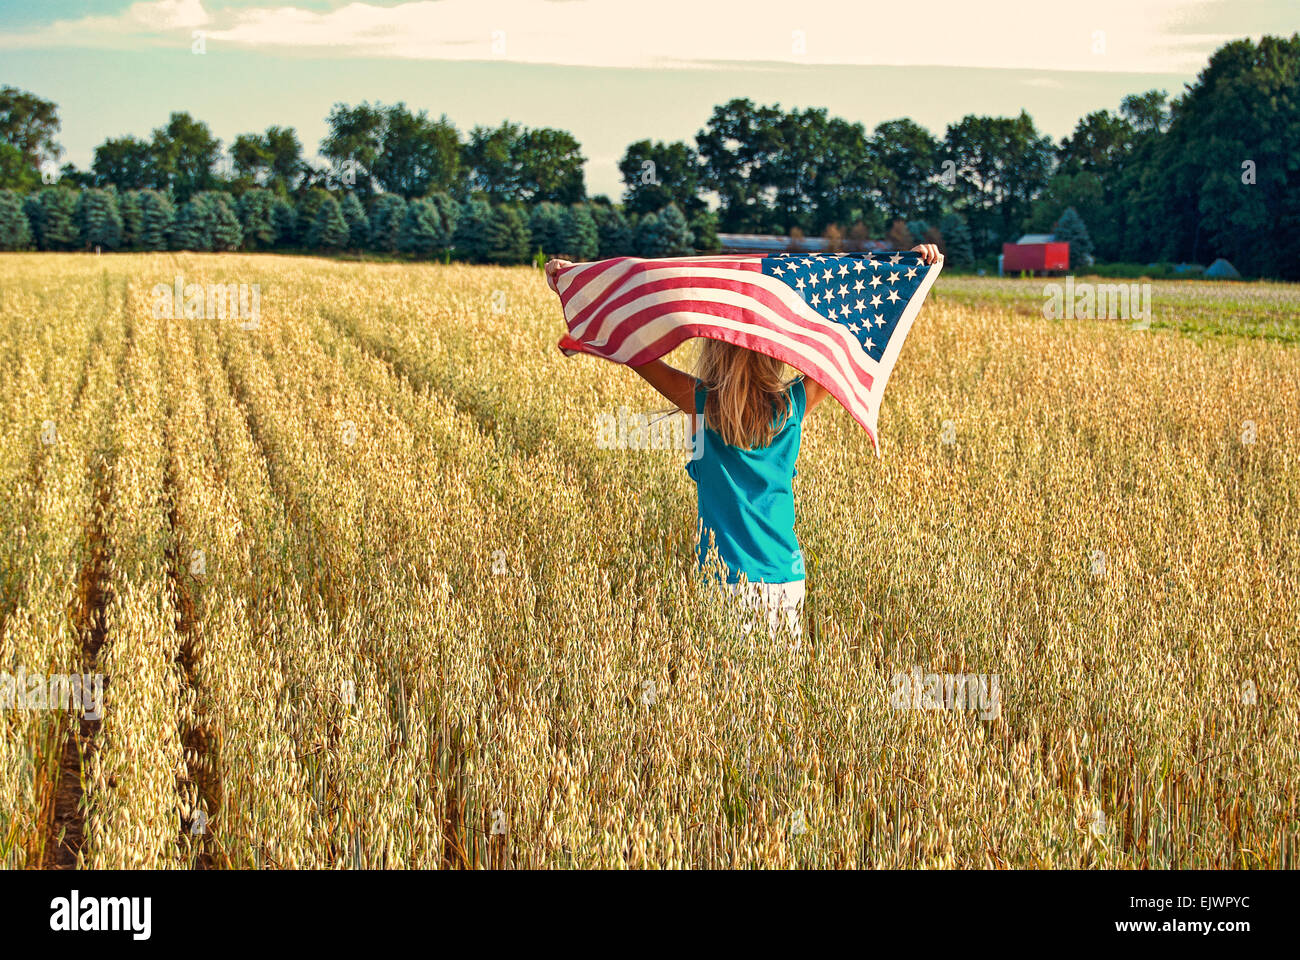 Young girl running in a field of wheat with American flag. - Stock Image